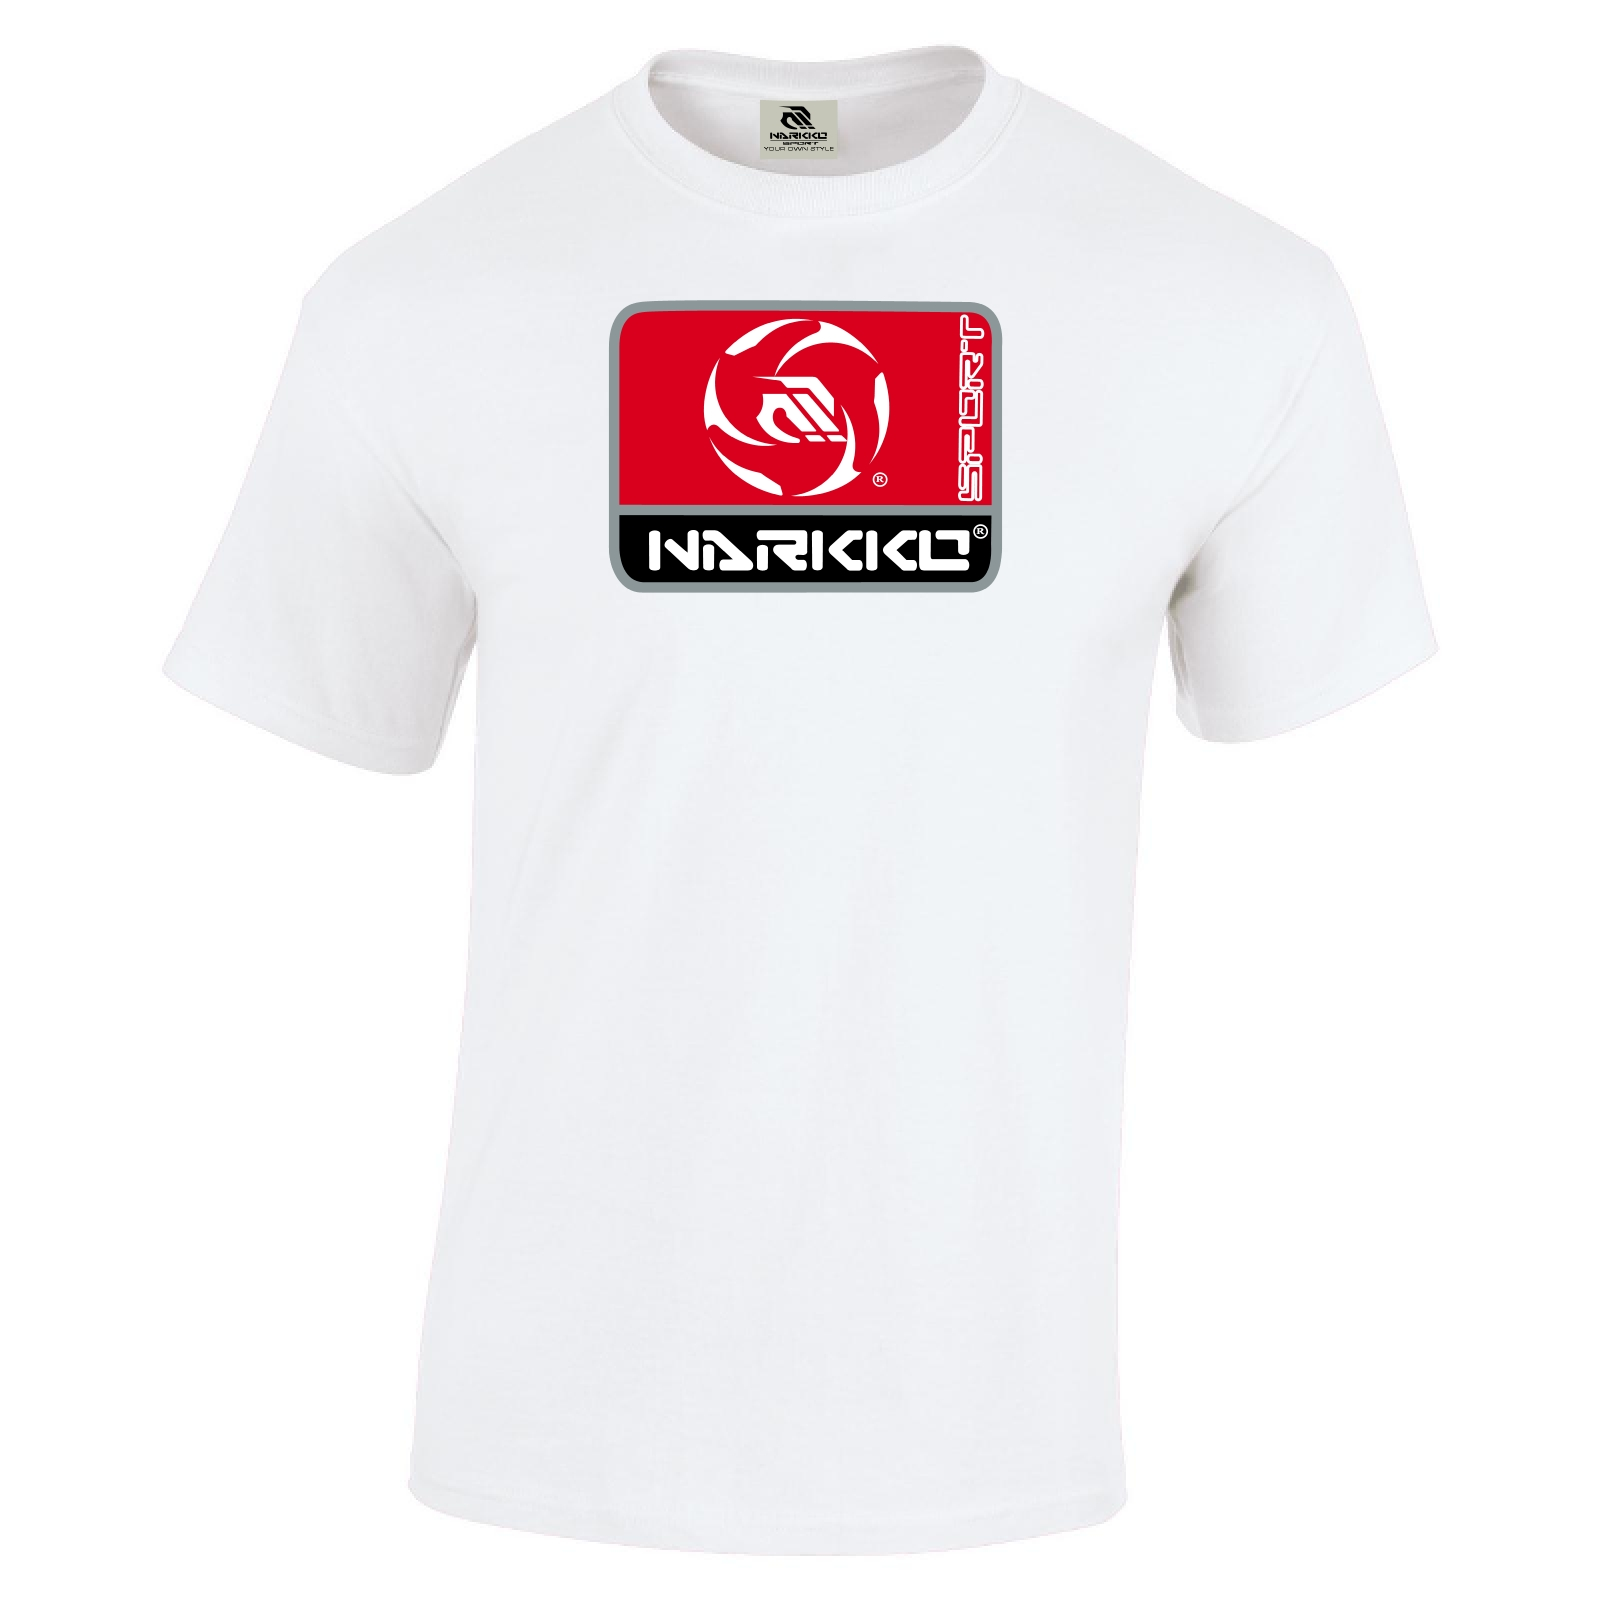 fe5499b6bf6 T-SHIRT FOR WEBSITE 2015   3